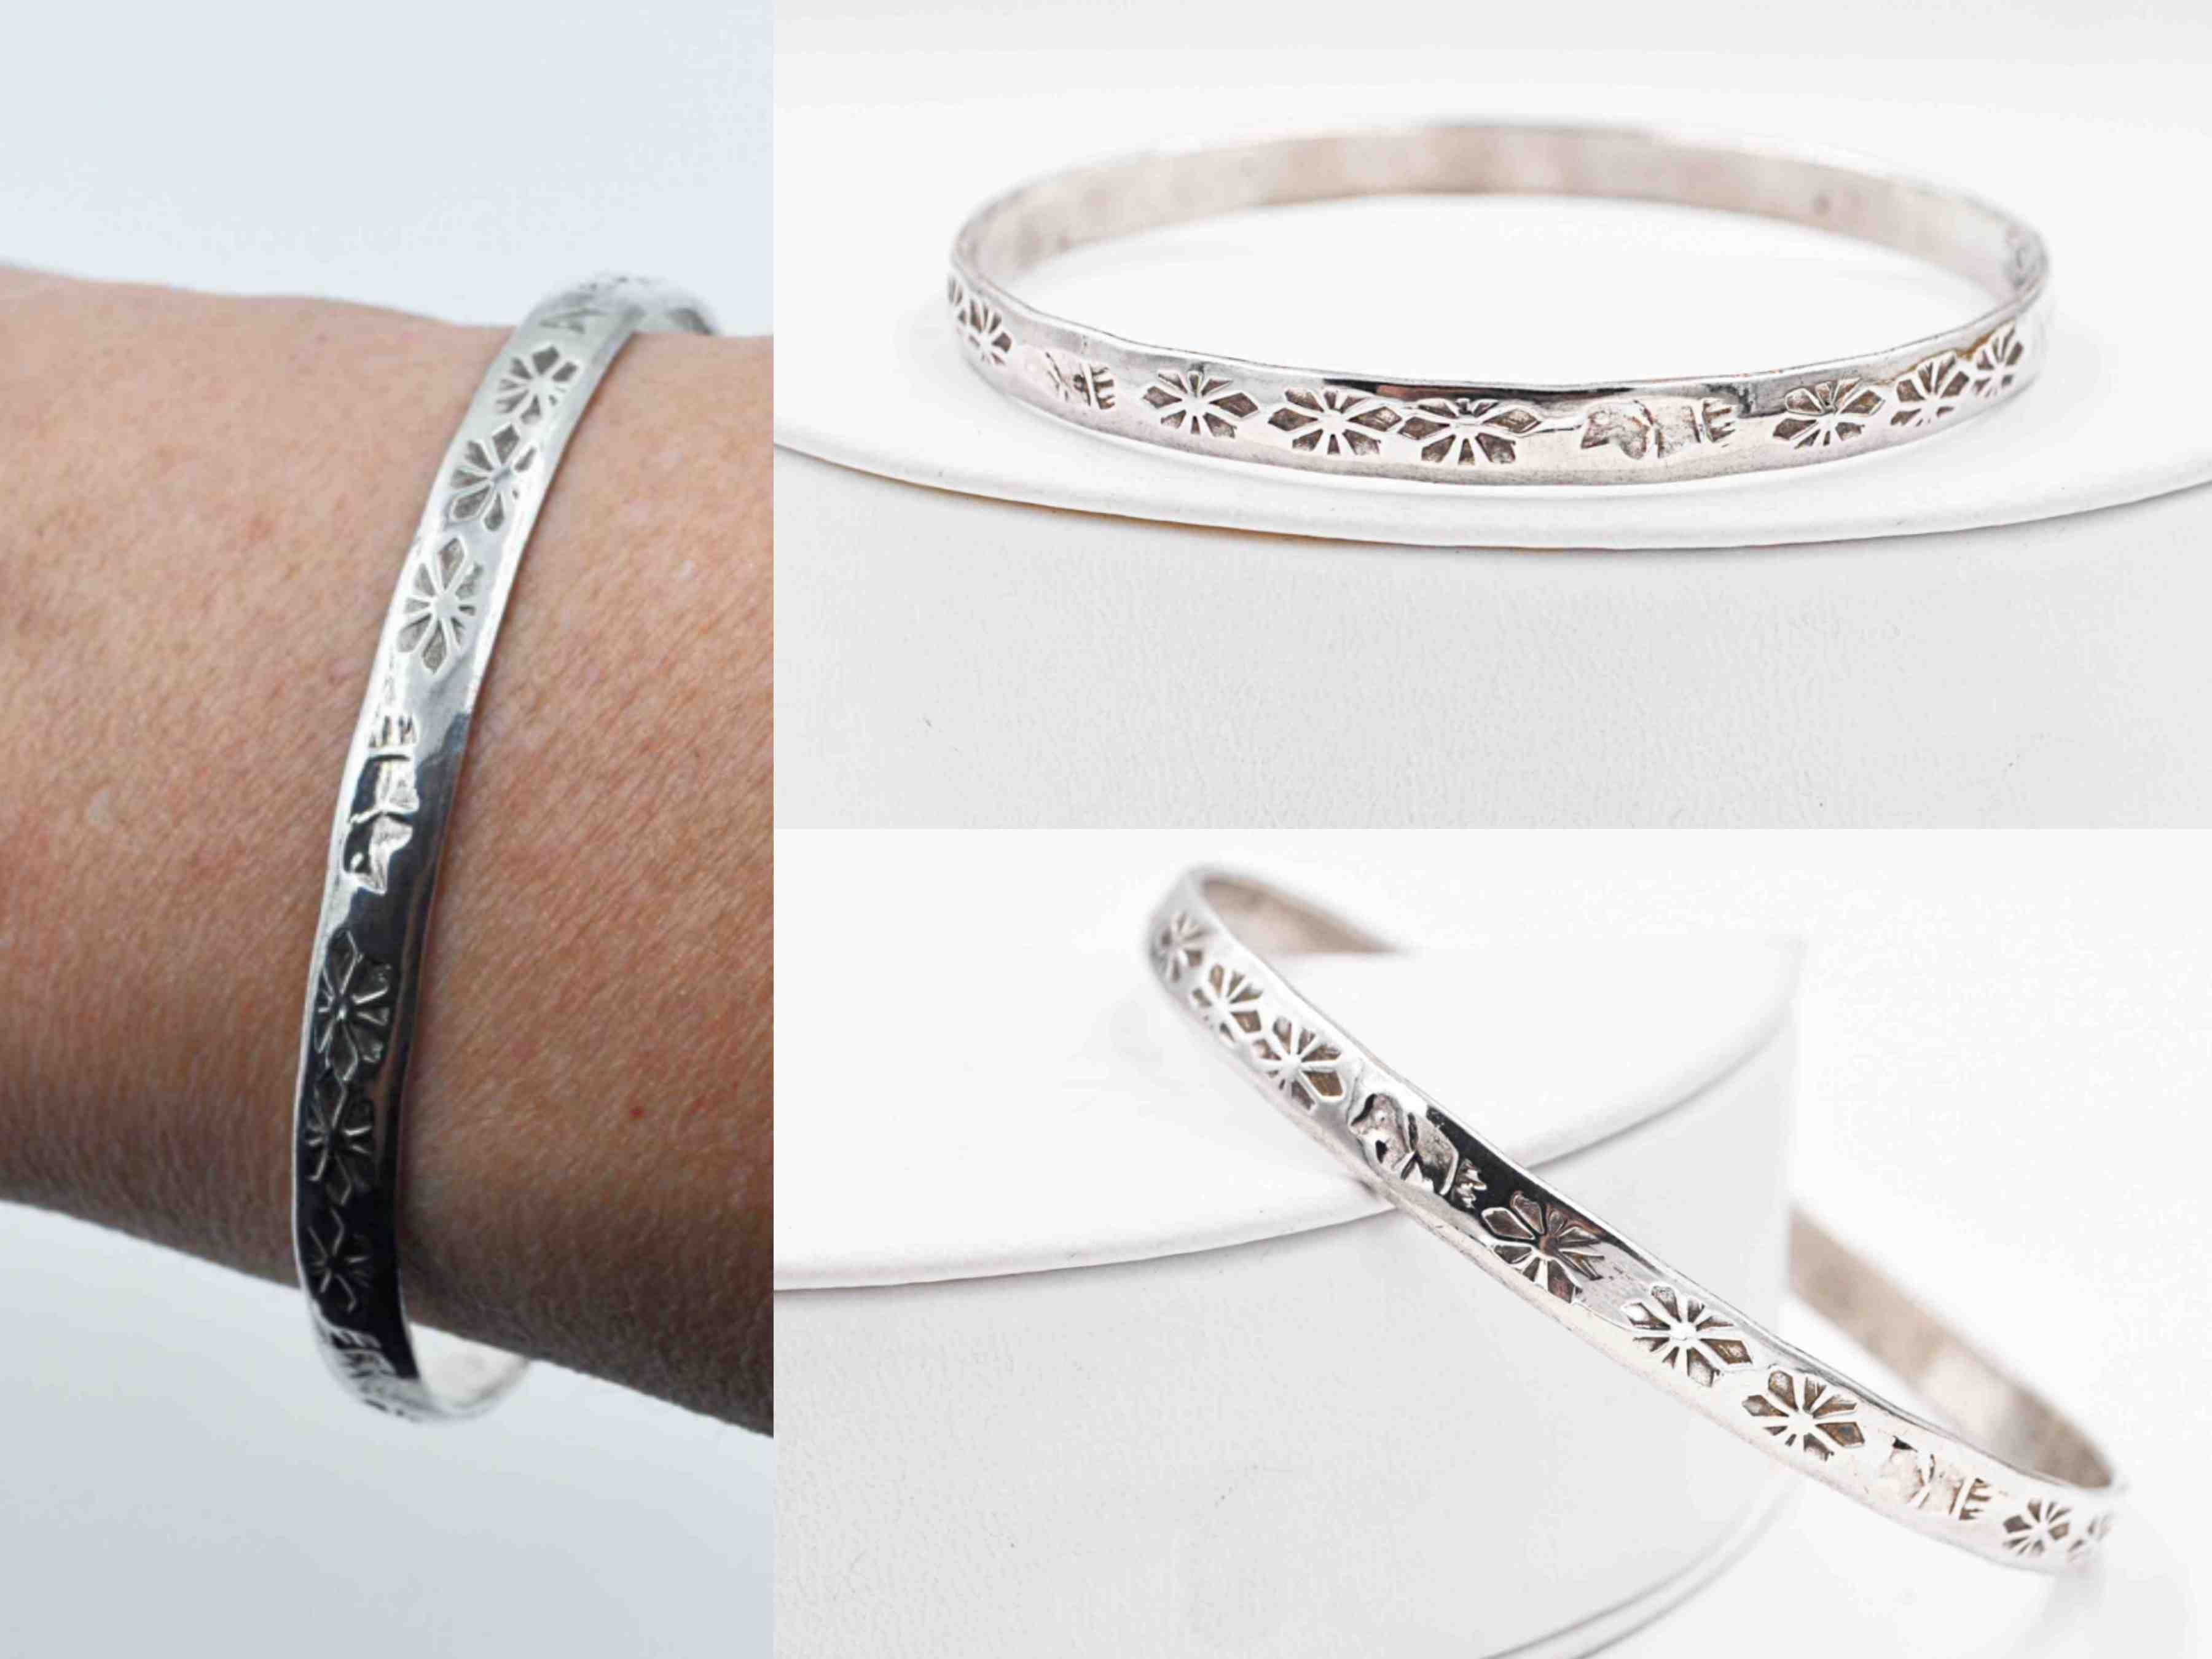 1050fcbf2cd Vintage Taxco Sterling Silver Bangle Bracelet, Mexico, Floral, Flower,  Bird, Stamped, Tribal, Stackable, Stacking, Lovely! #c003